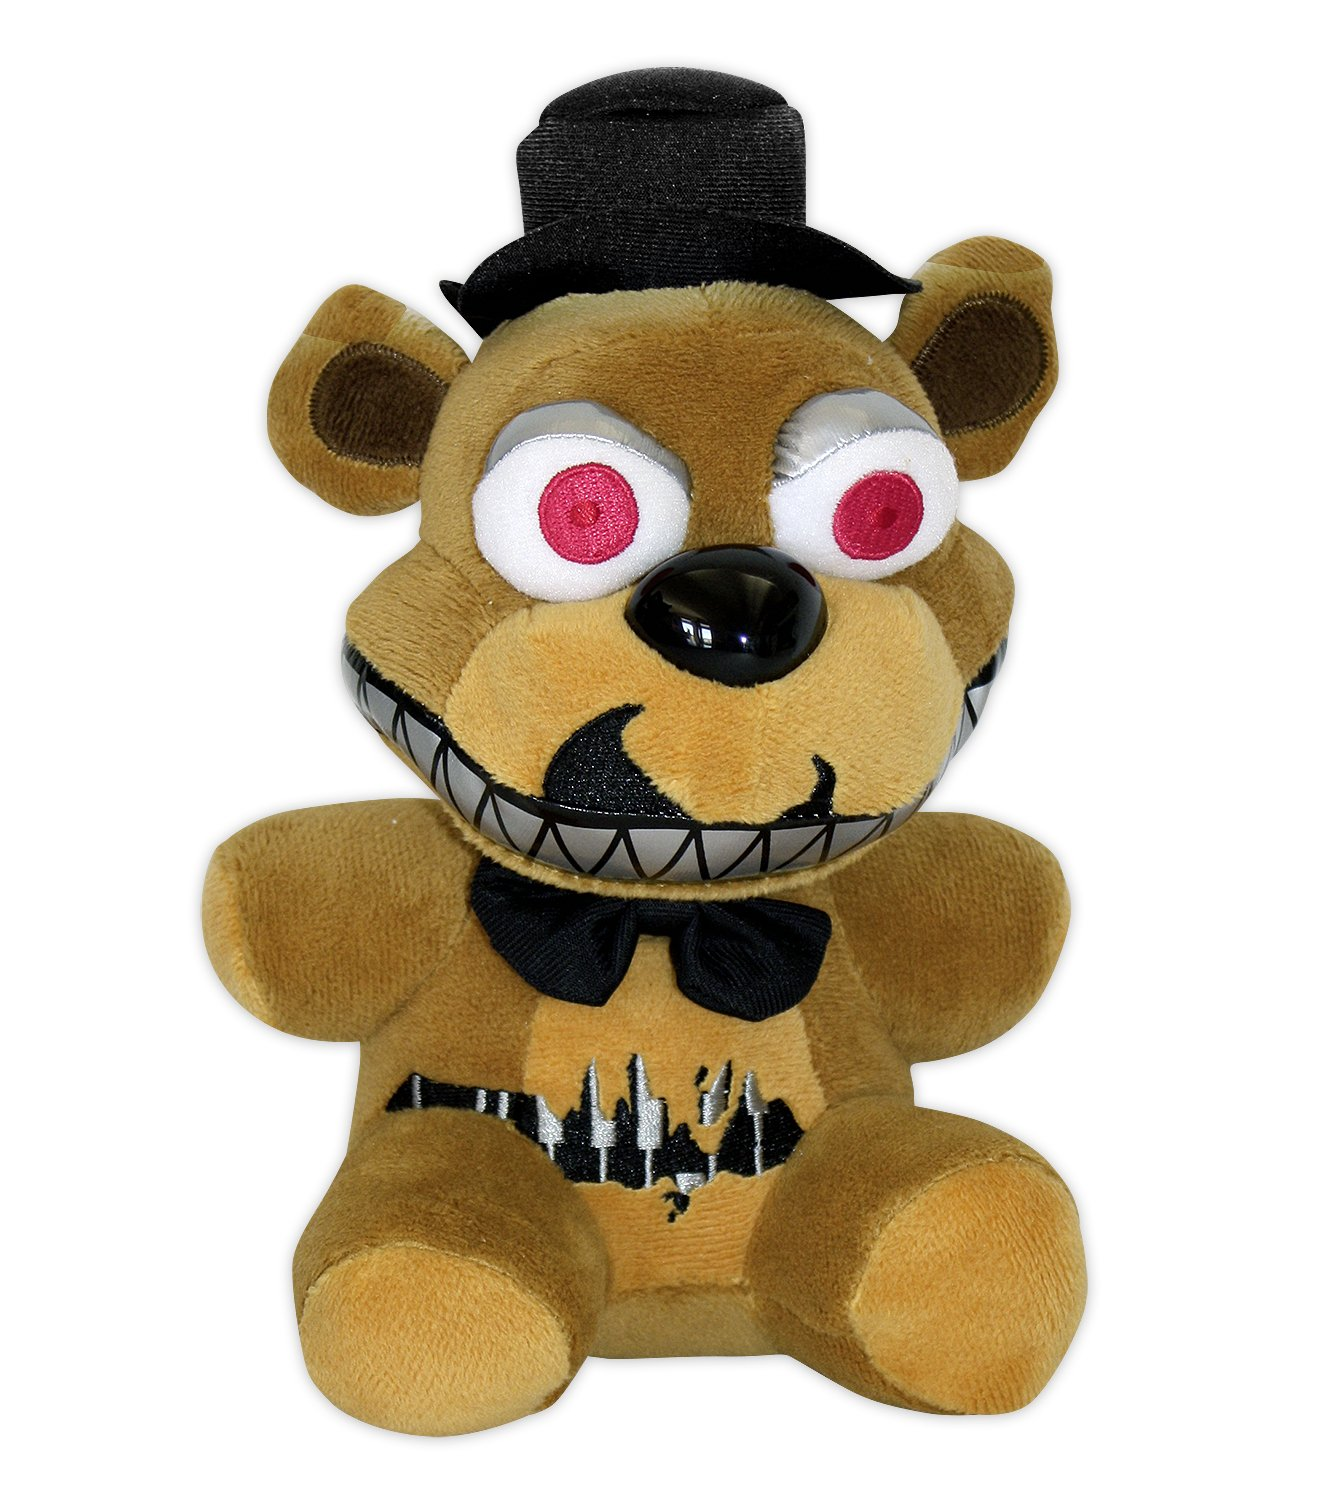 Amazon.com: Figurine de peluche Five Nights At Freddys - Freddy: Home & Kitchen